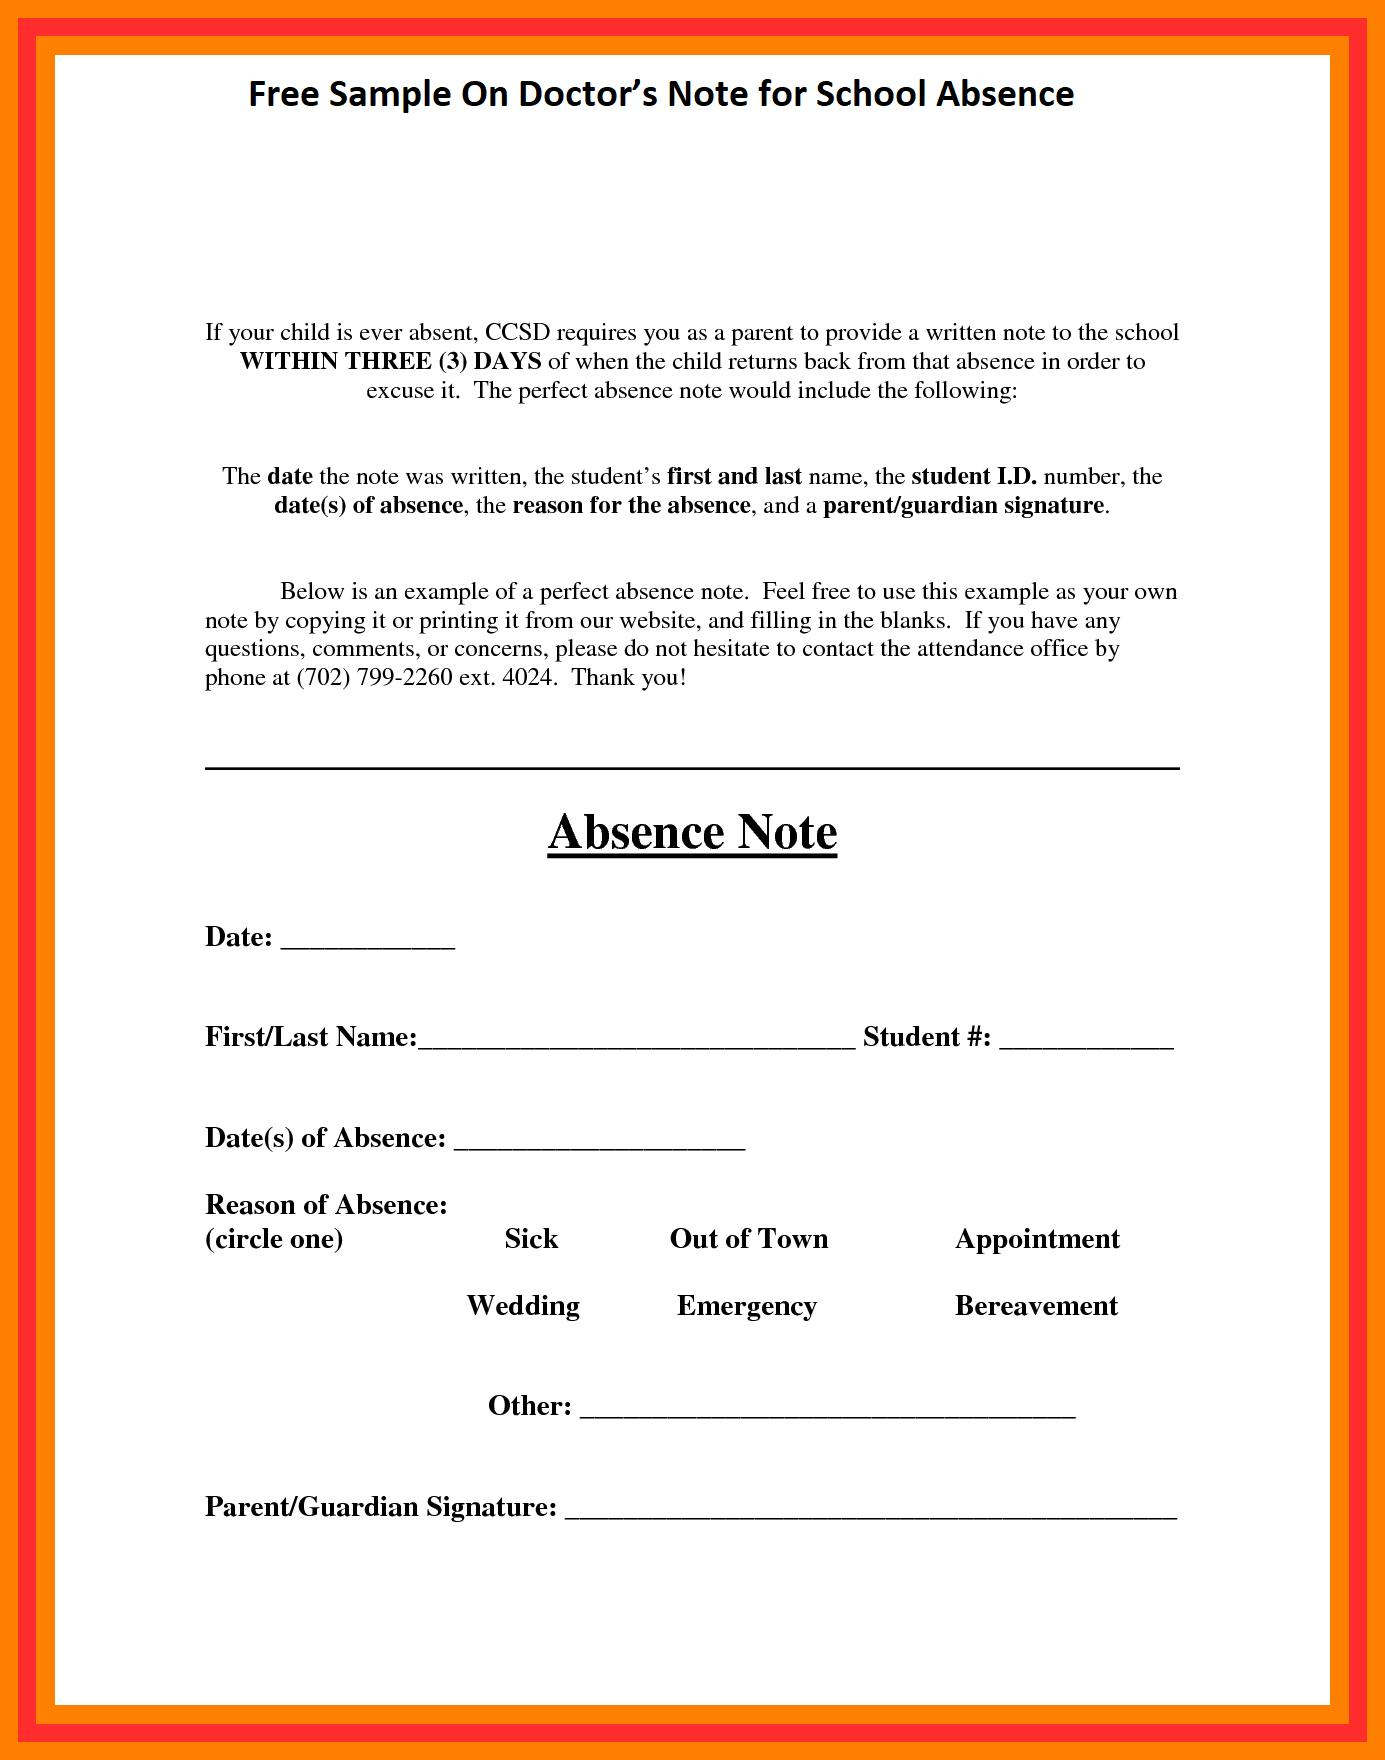 Doctors Notes Templates For School